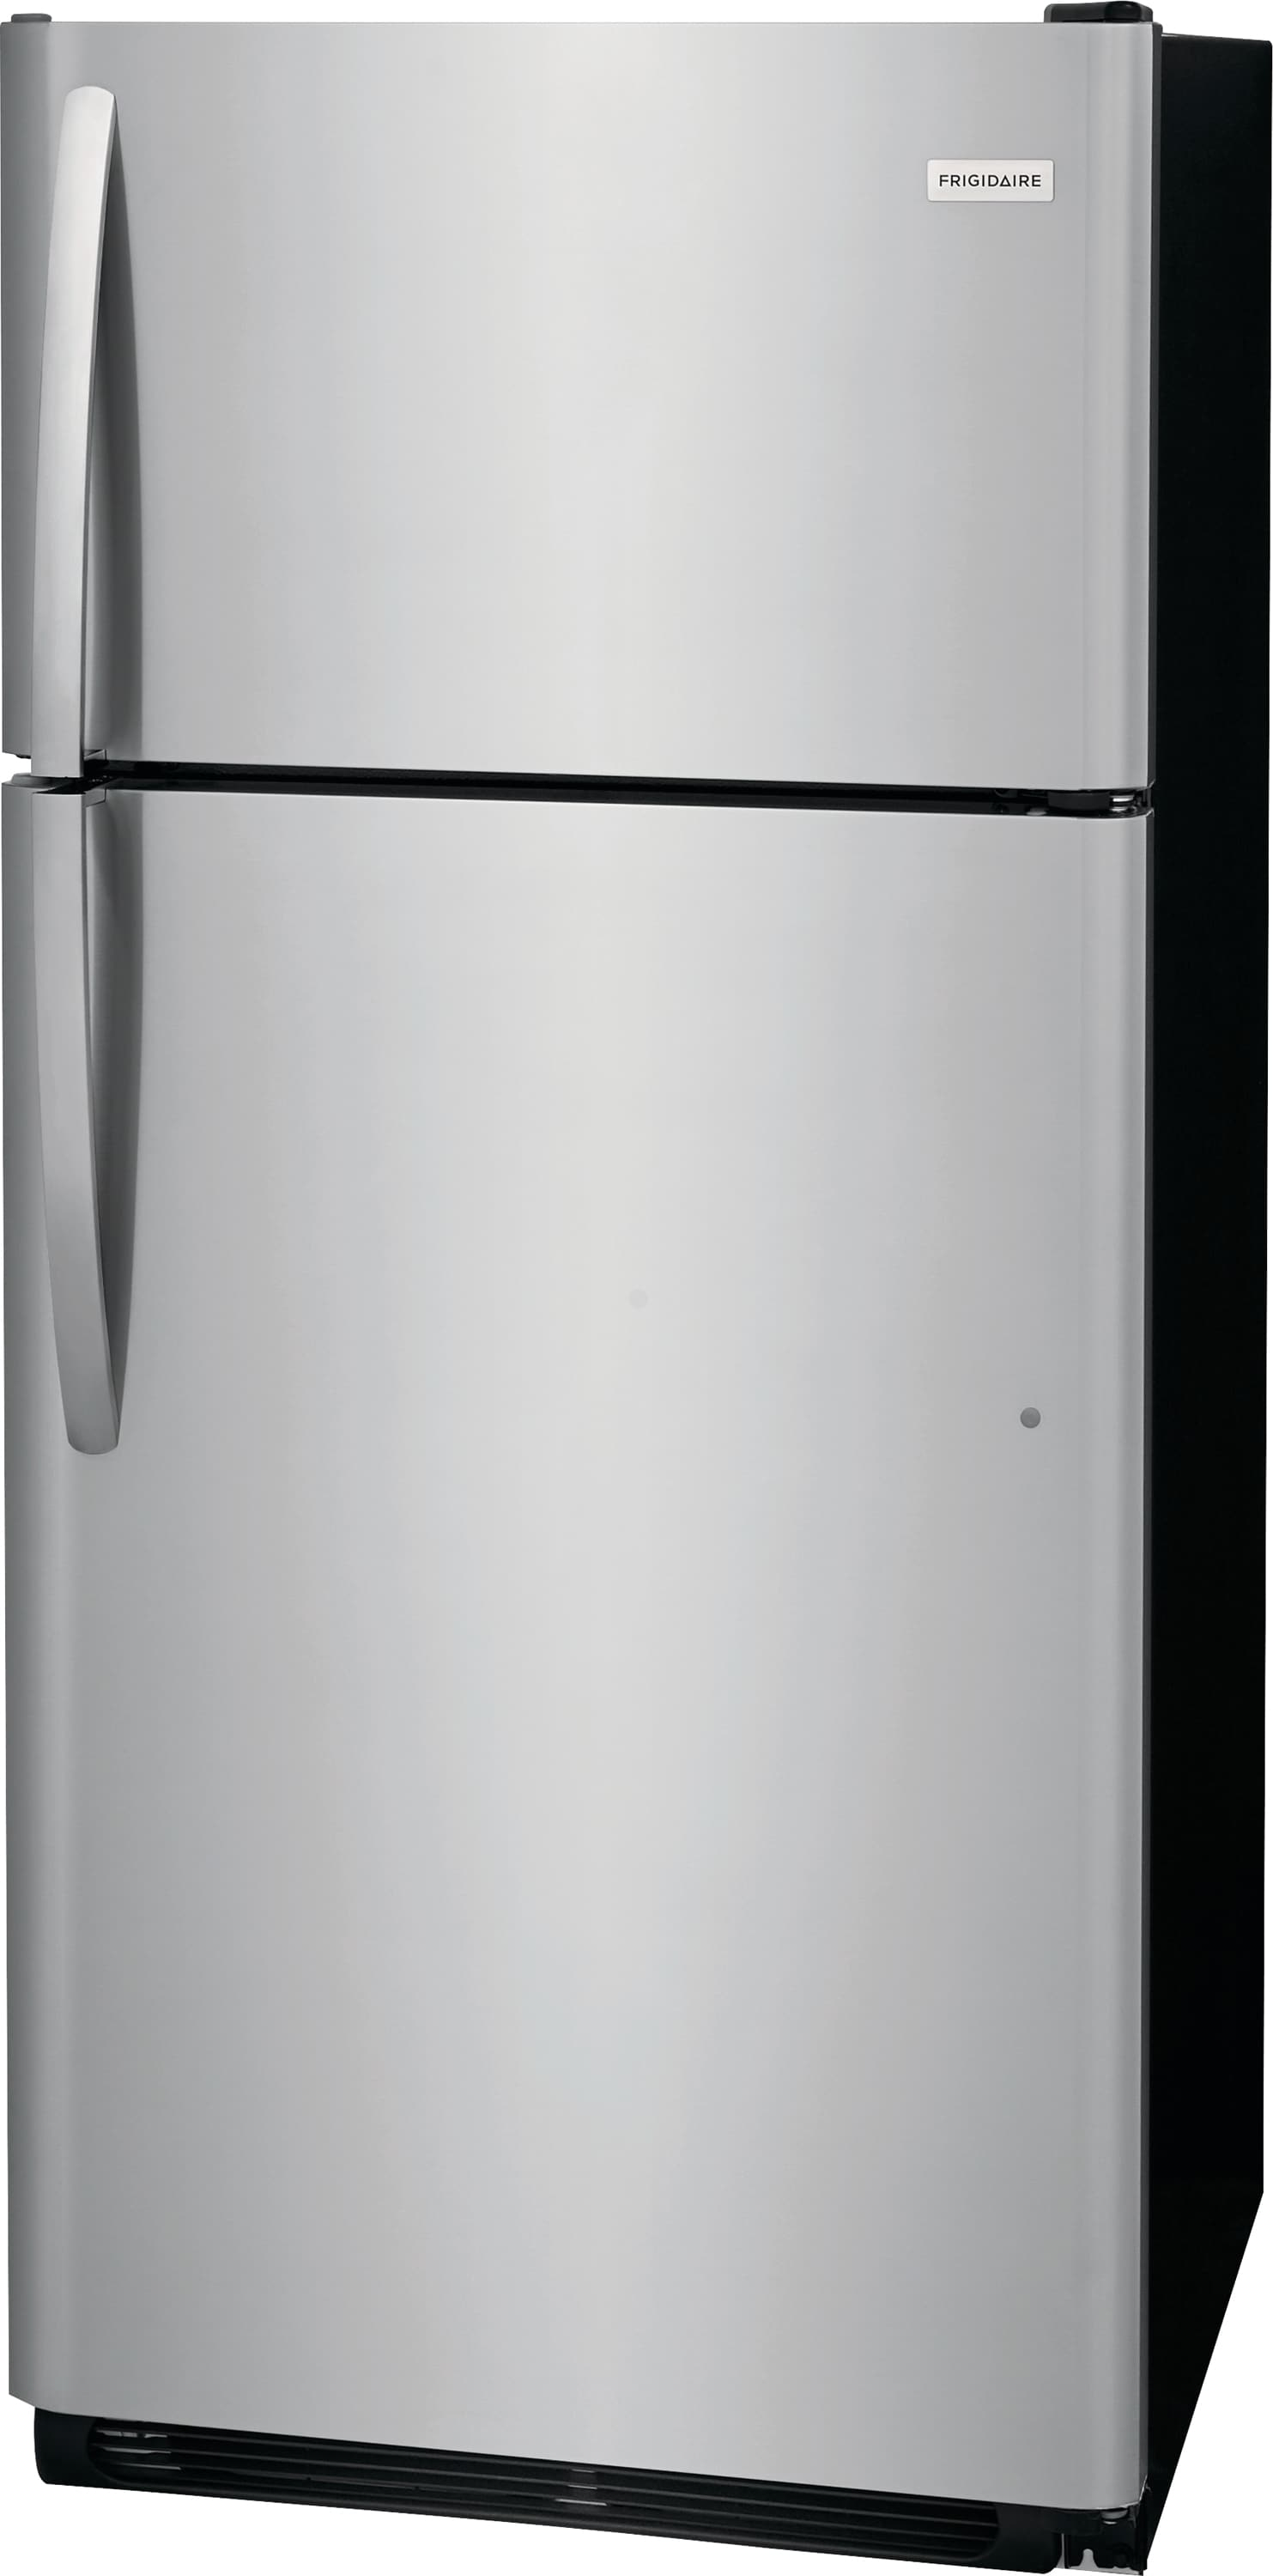 Model: FFHT1821TS | 18 Cu. Ft. Top Freezer Refrigerator